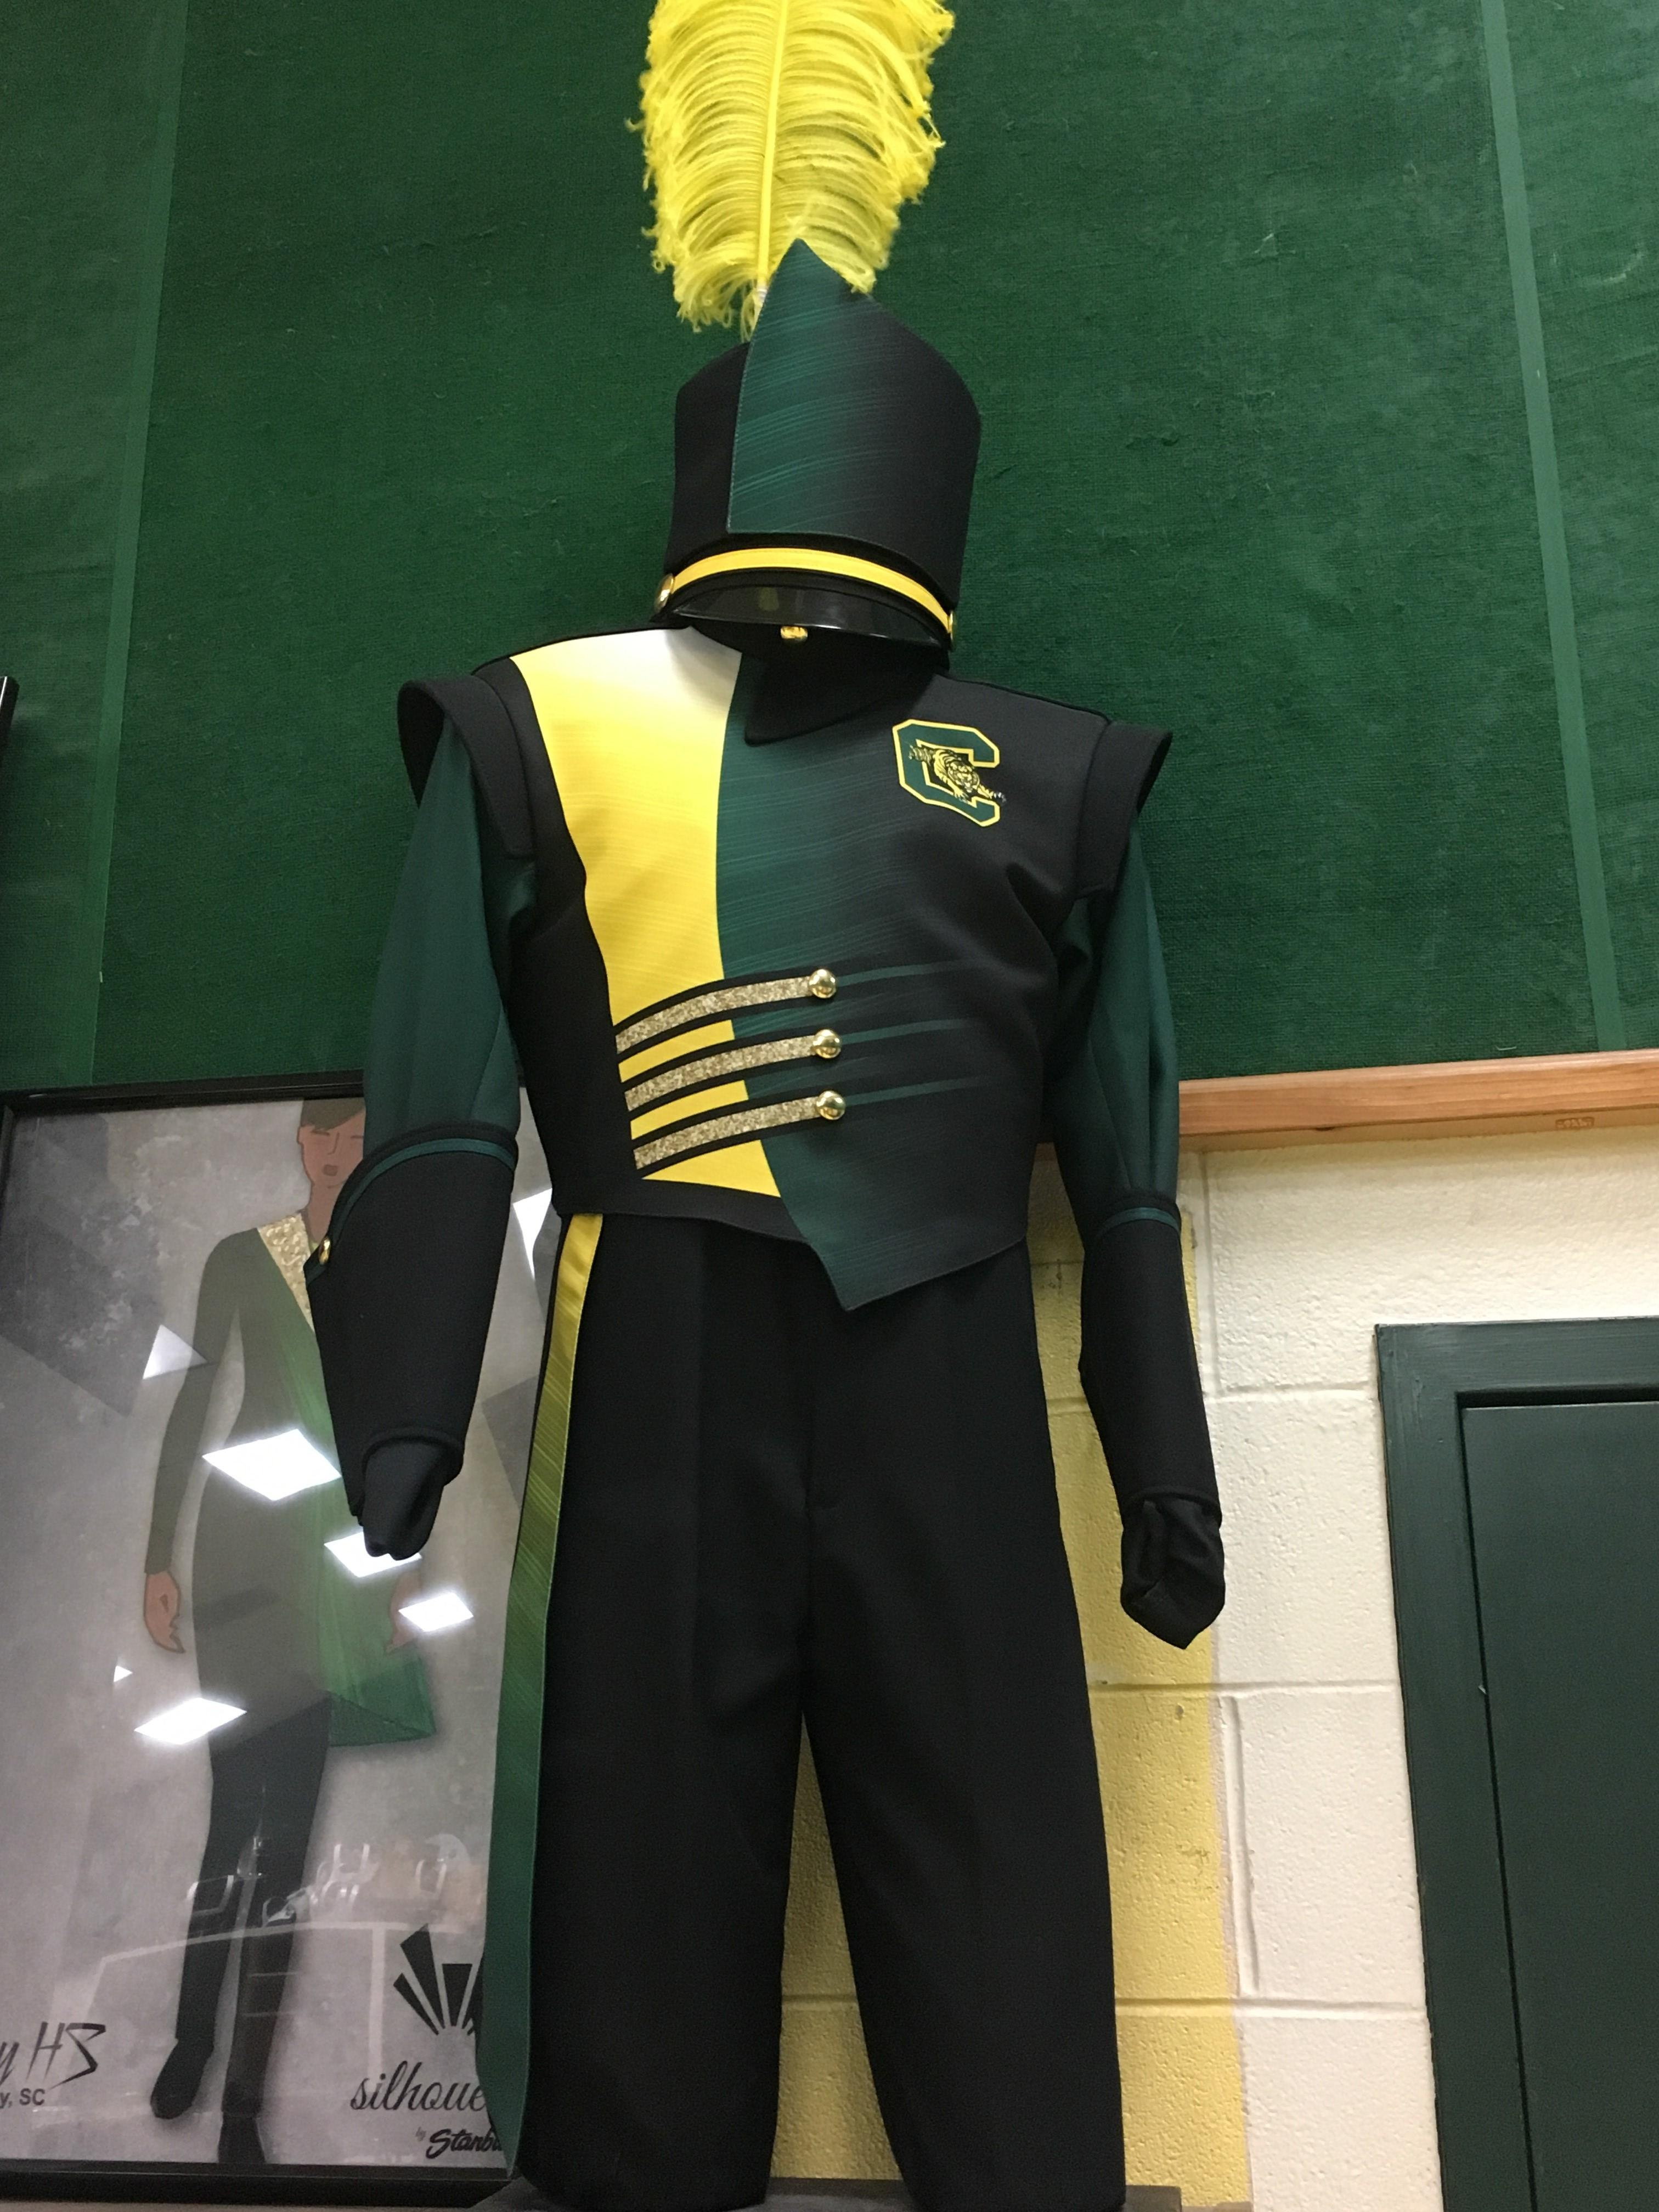 Conway High School band members are hoping to raise enough money to buy new band uniforms.  This design is lighter, washable and should students better than the old wool uniforms. (Amanda Kinseth/WPDE)